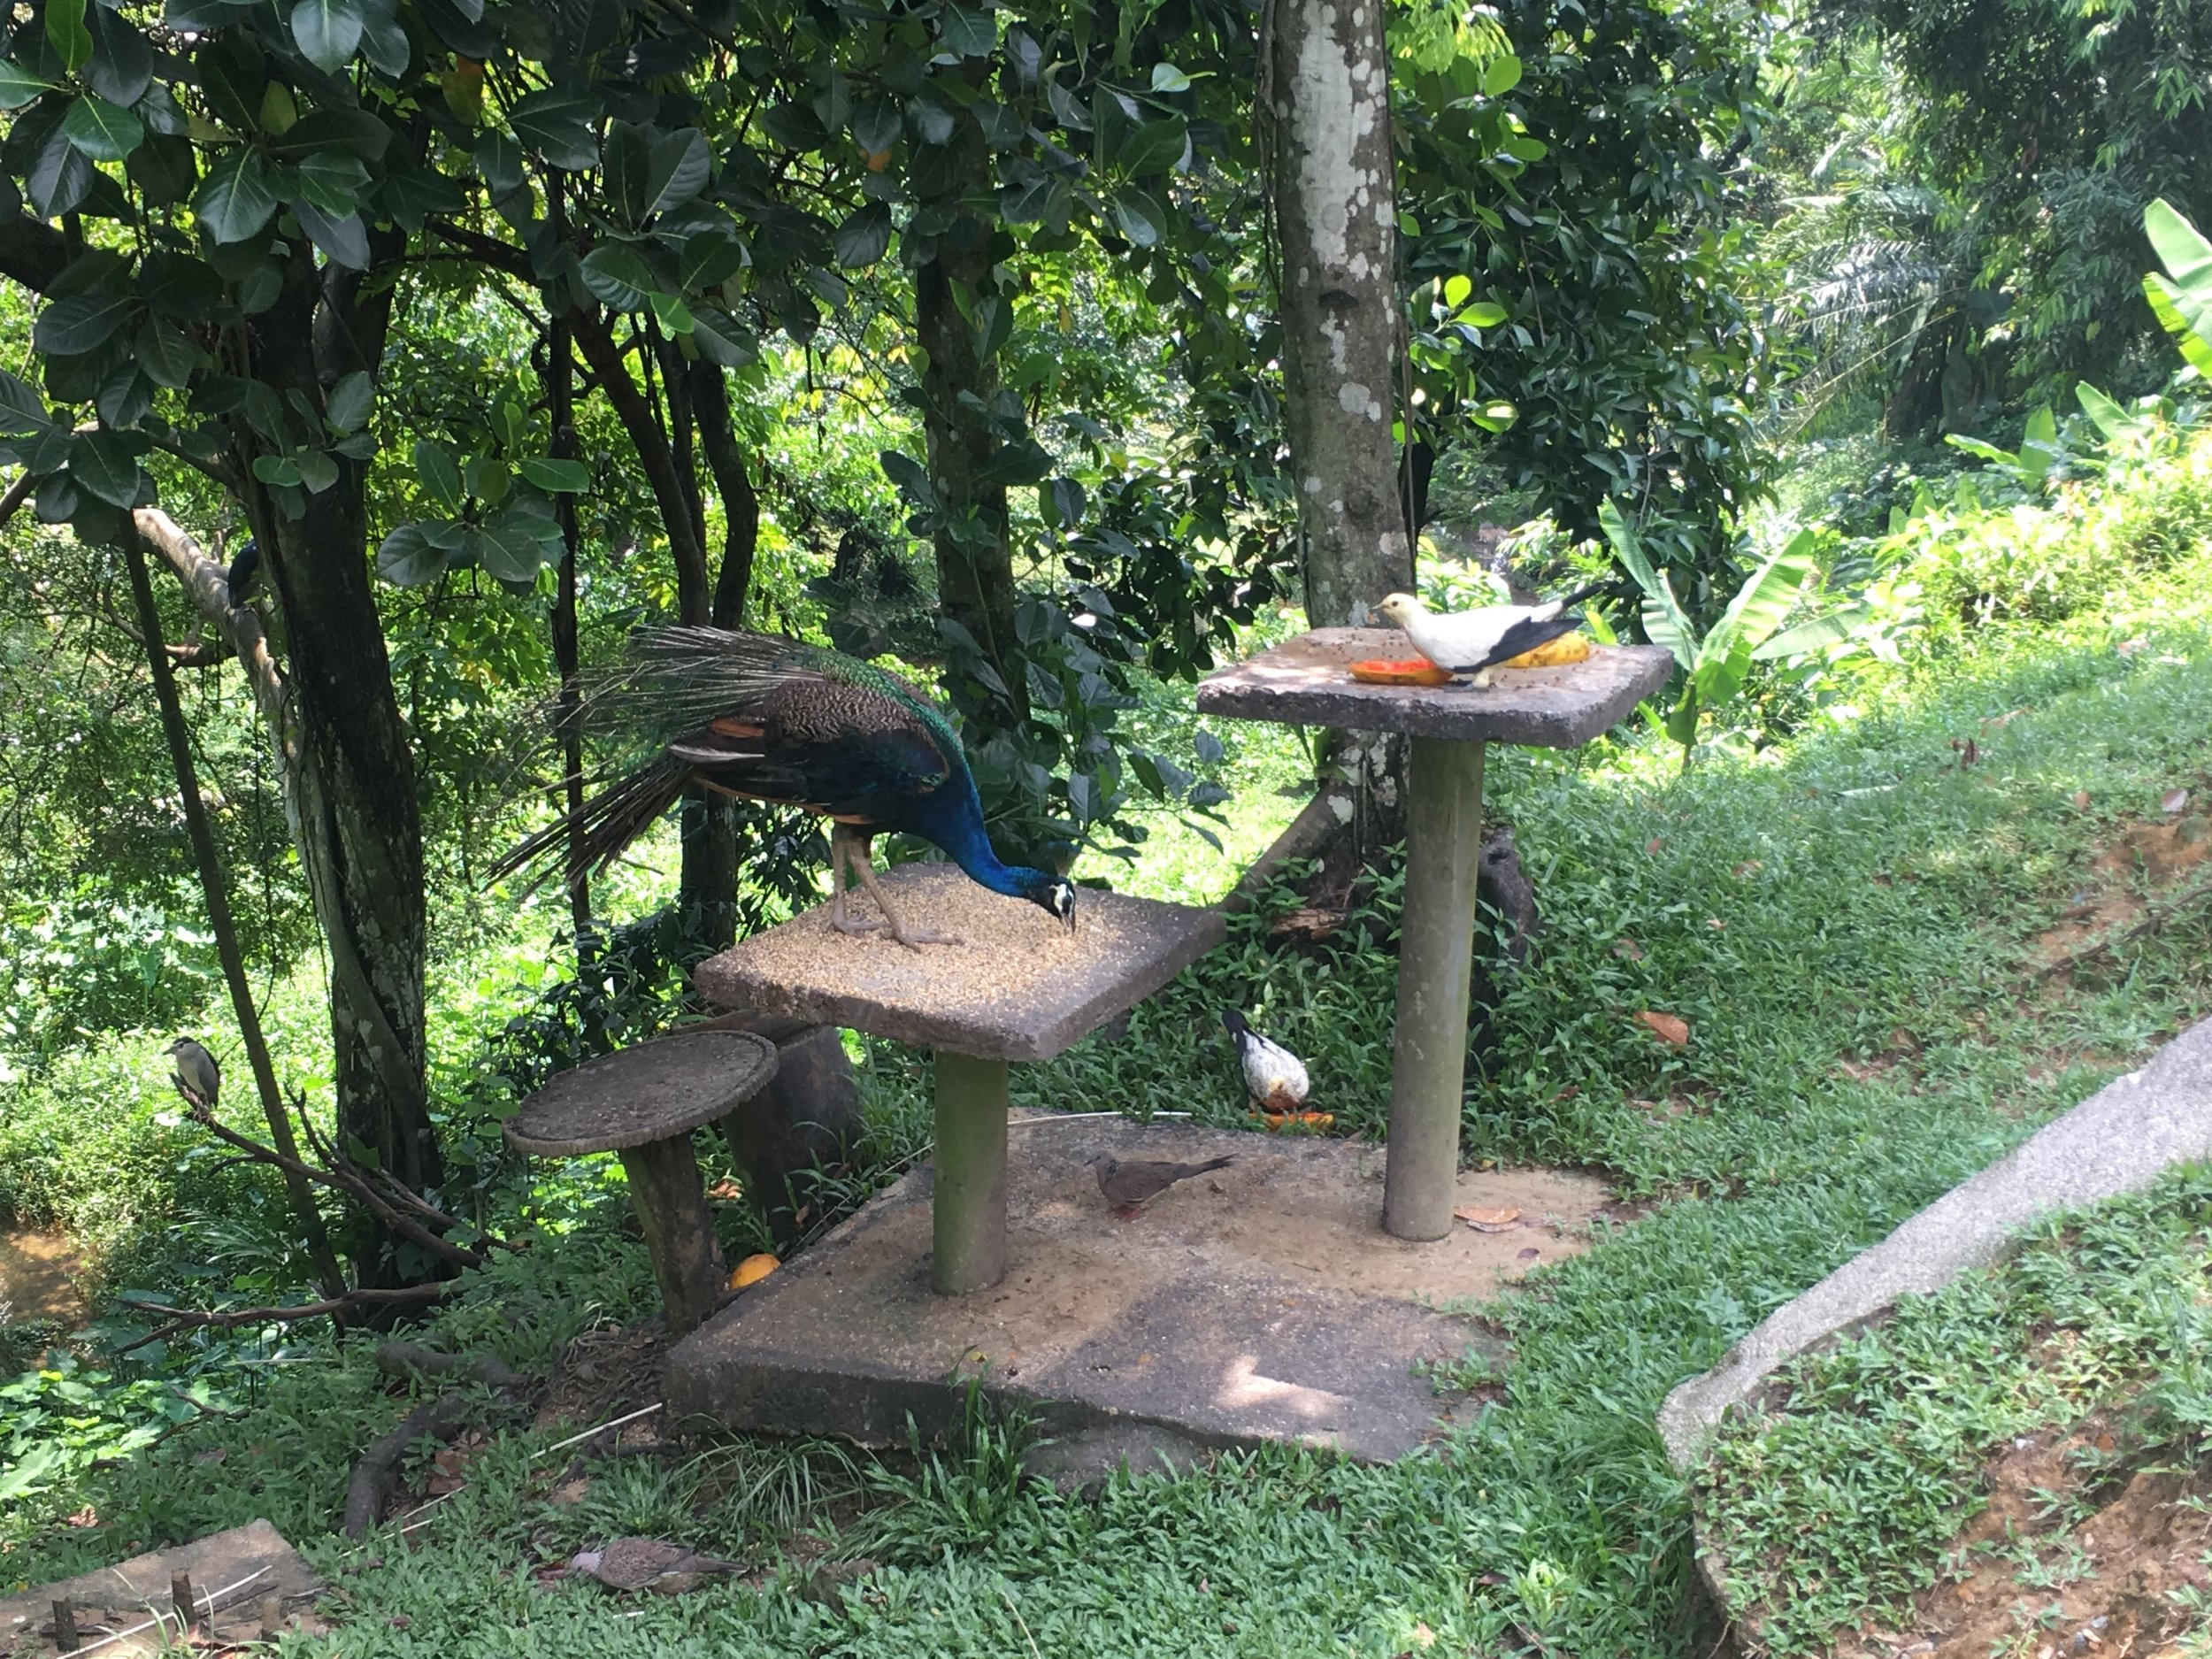 feeding stations are set up throughout the bird park so that visitors can see many different birds